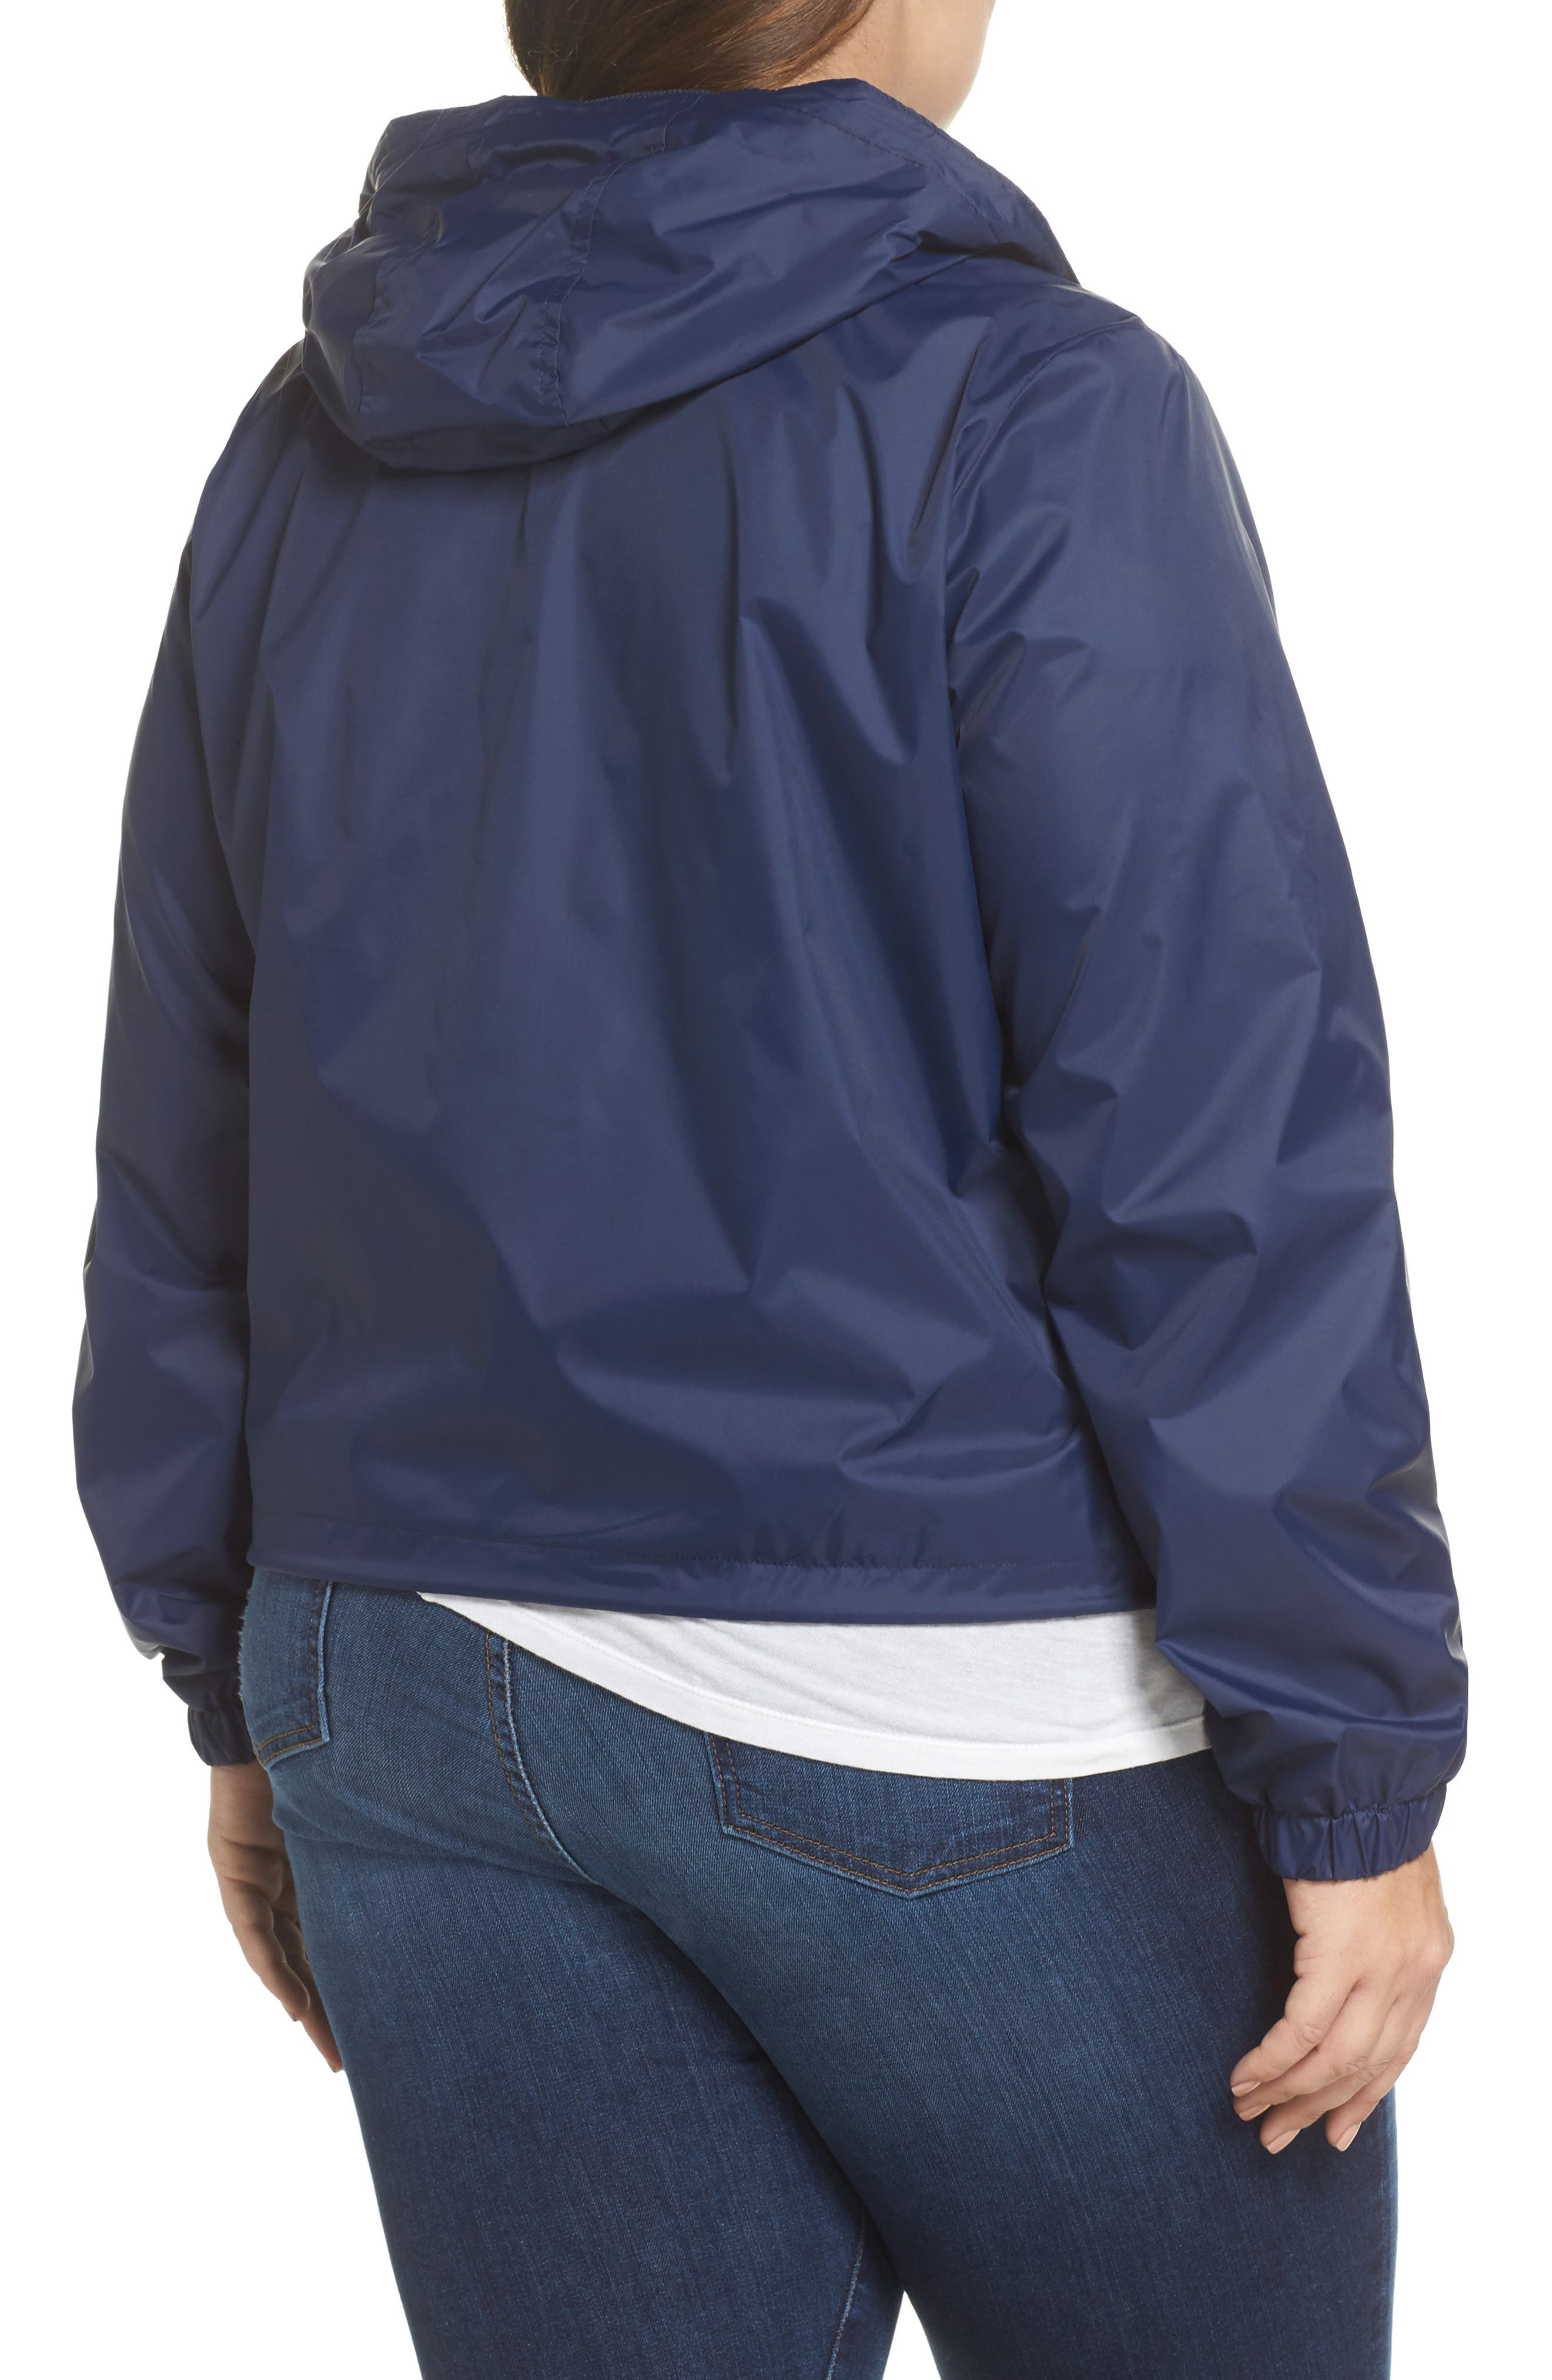 Retro Hooded Coach's Jacket,                             Alternate thumbnail 6, color,